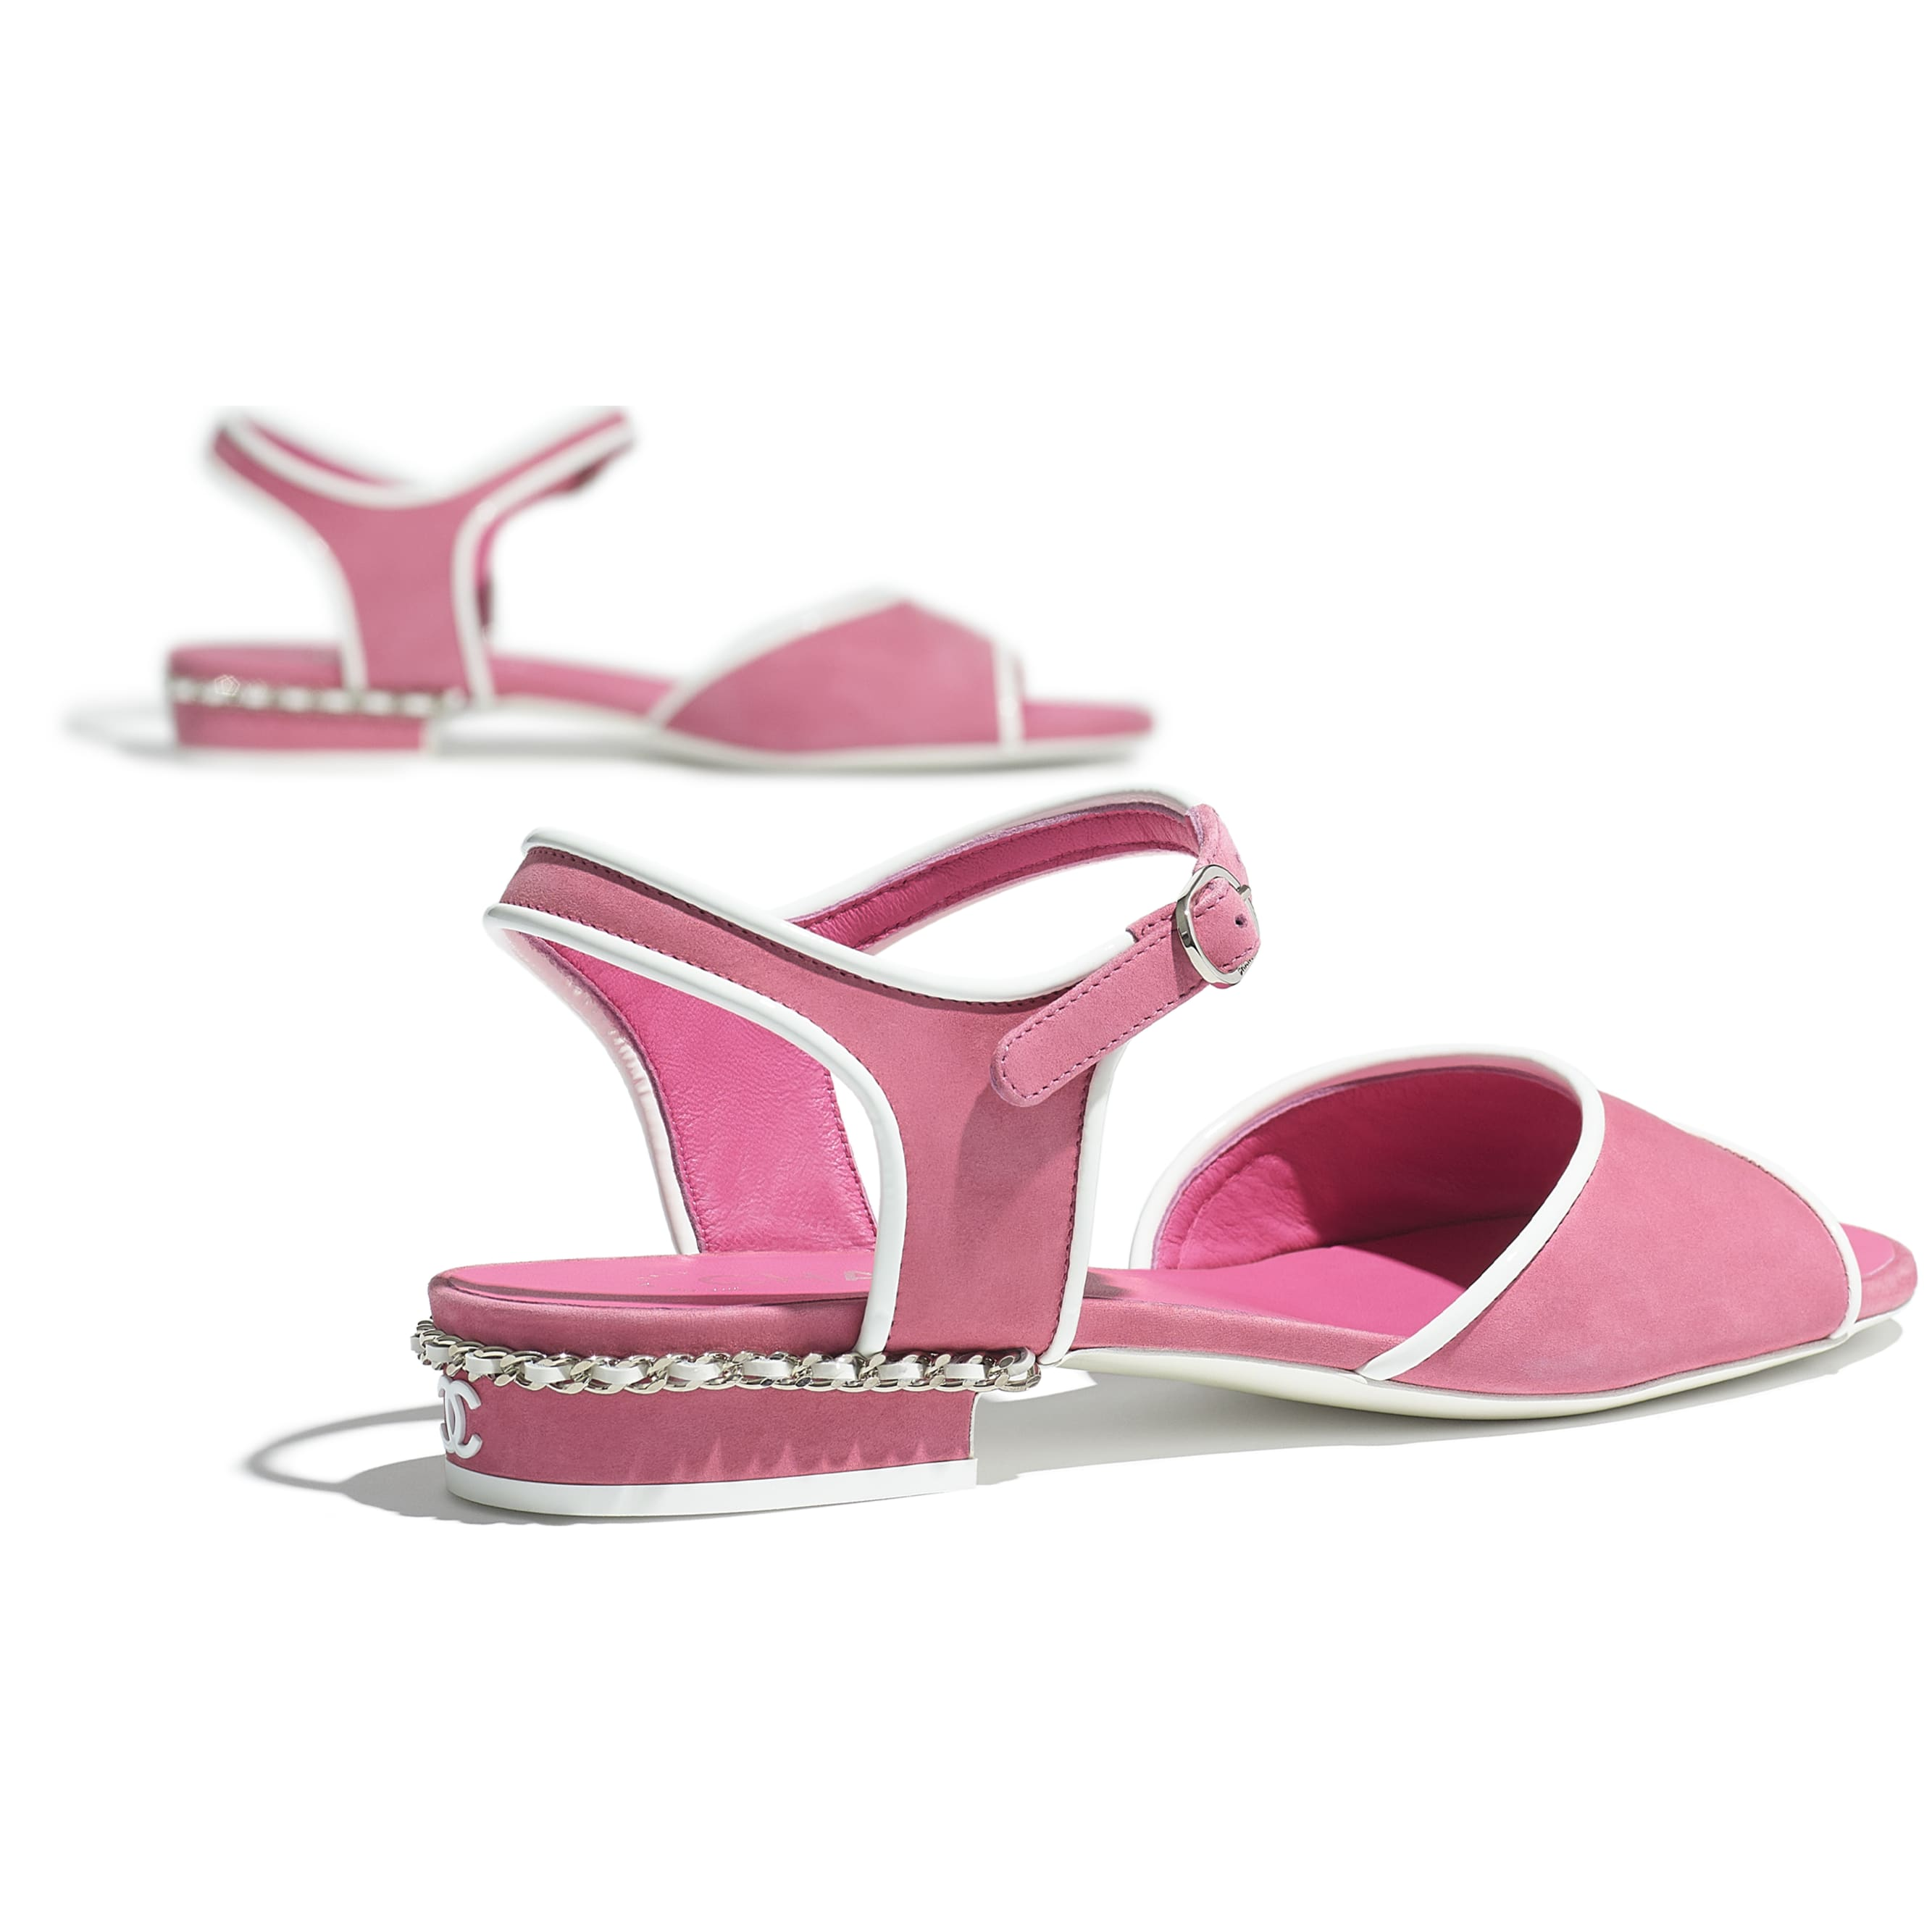 Sandals - Pink - Matte Velvet Calfskin - CHANEL - Extra view - see standard sized version